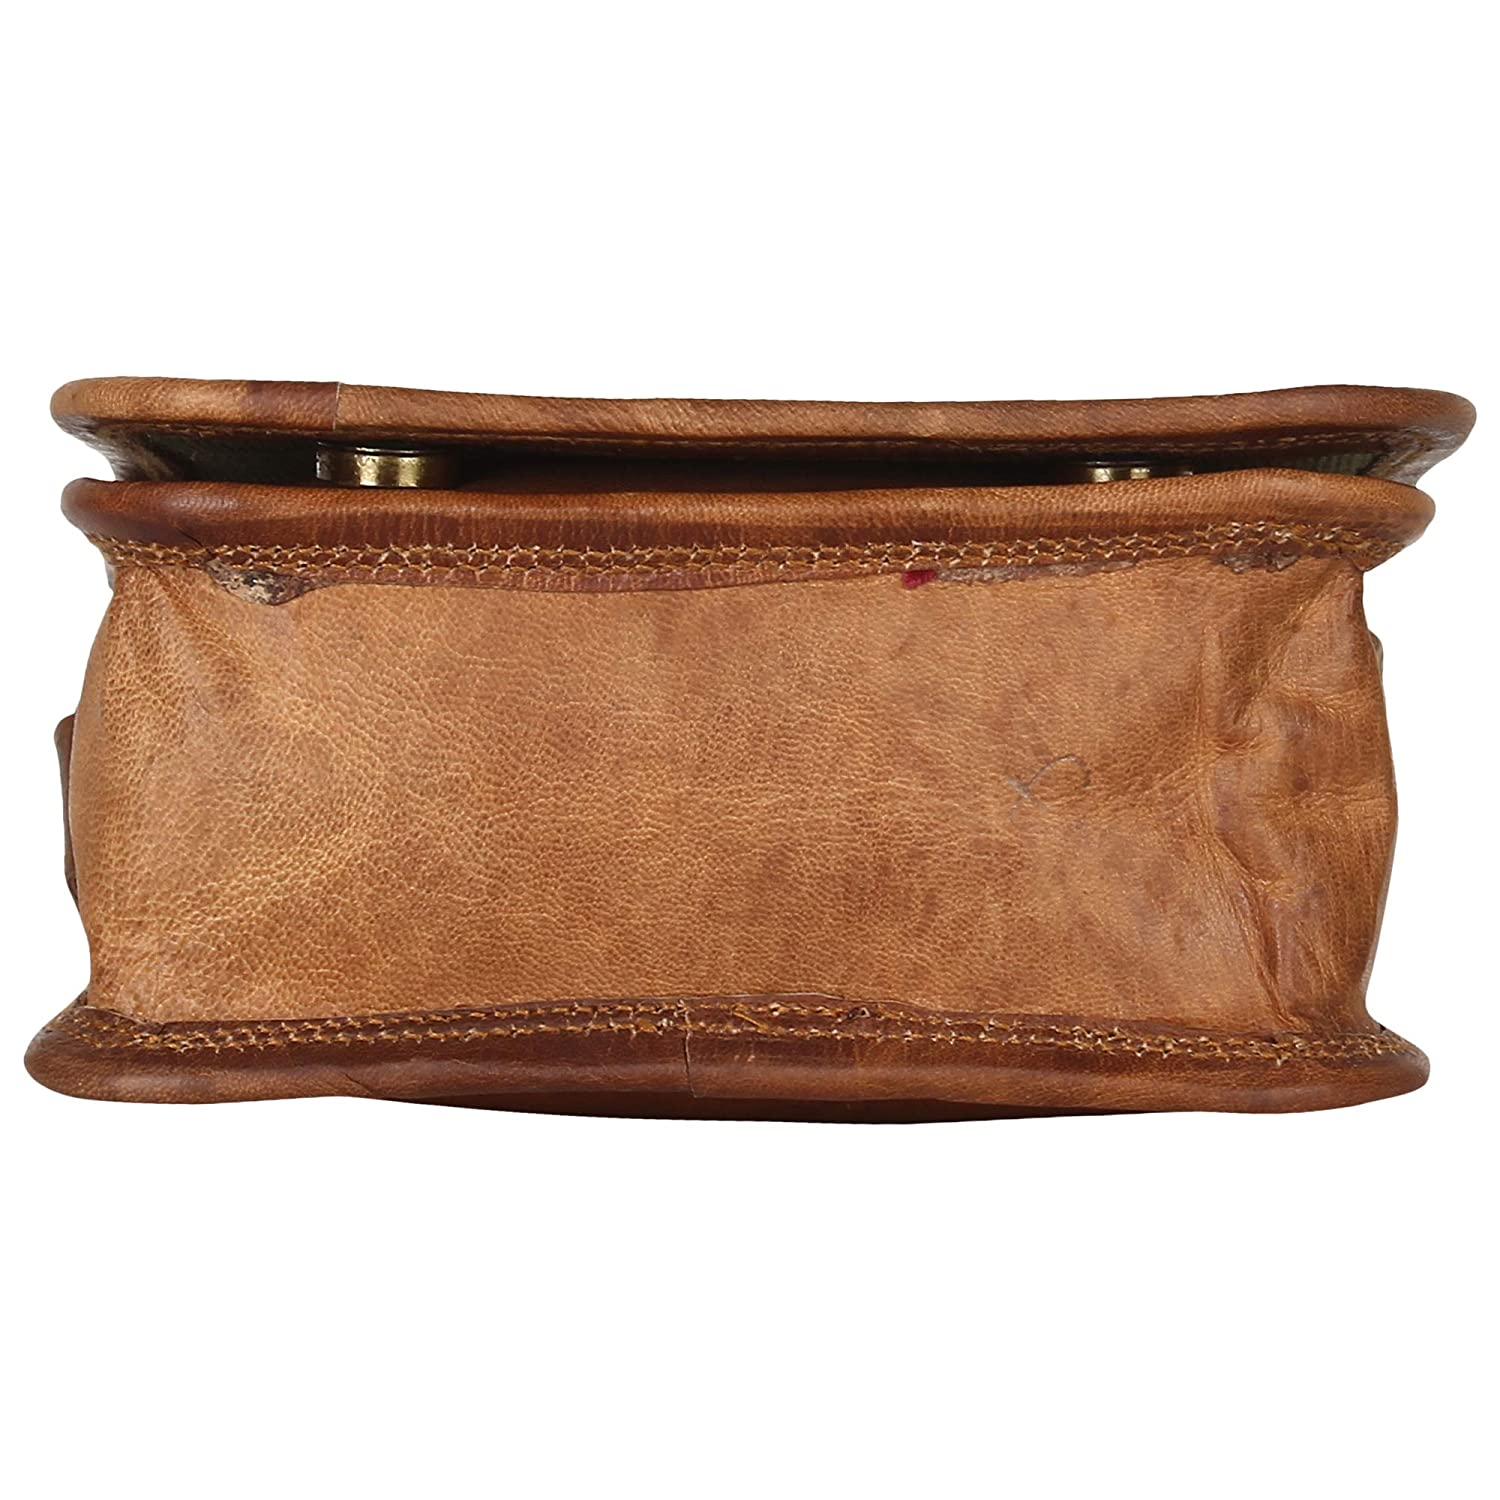 Brown CPLEATHER Premium Quality Leather Messenger Bag for Men and Women